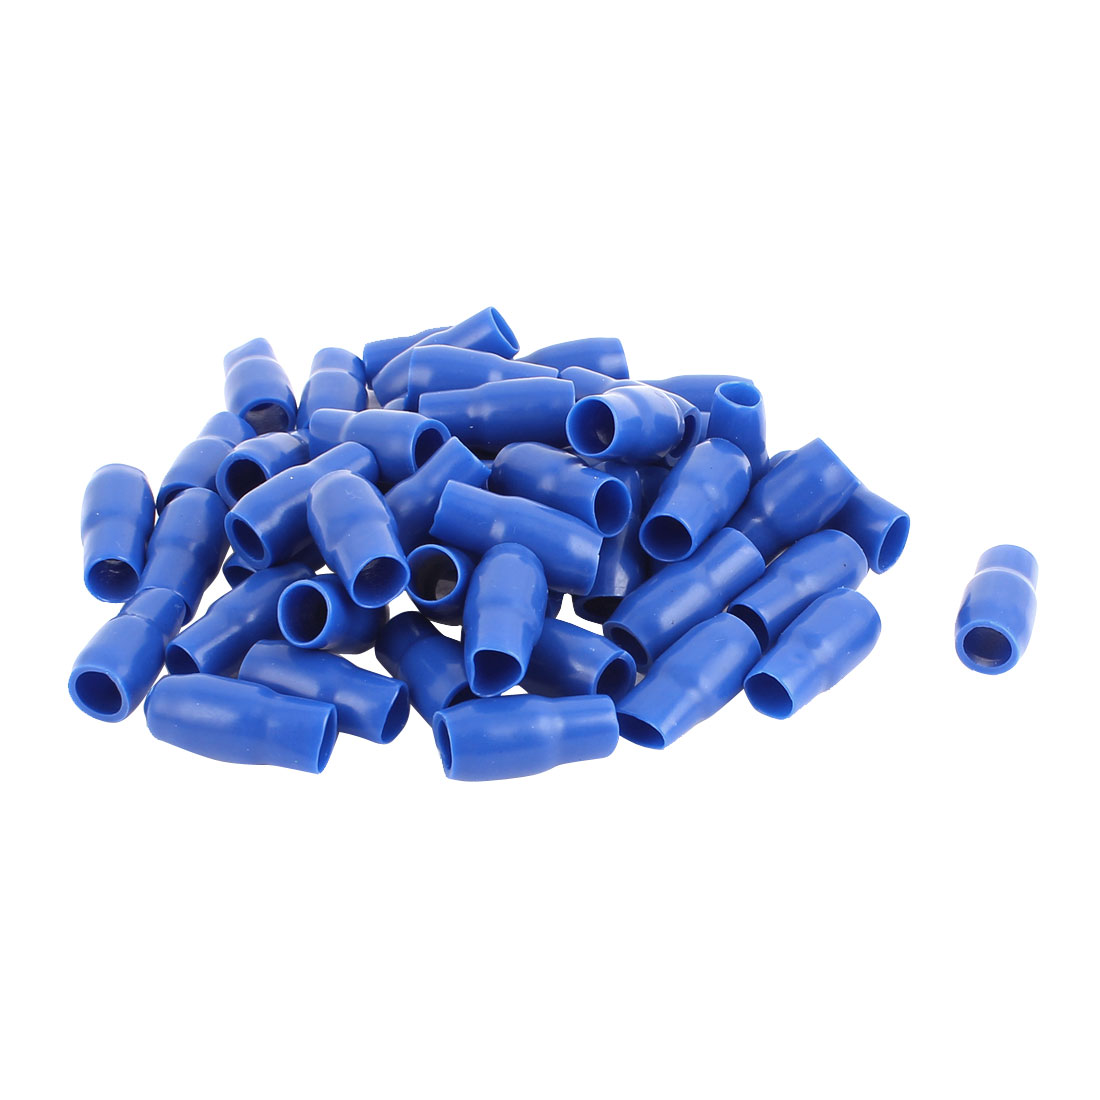 50 Pcs Blue Soft PVC Wire V-14 16mm2 Crimp Terminal End Insulated Sleeves Caps Cover